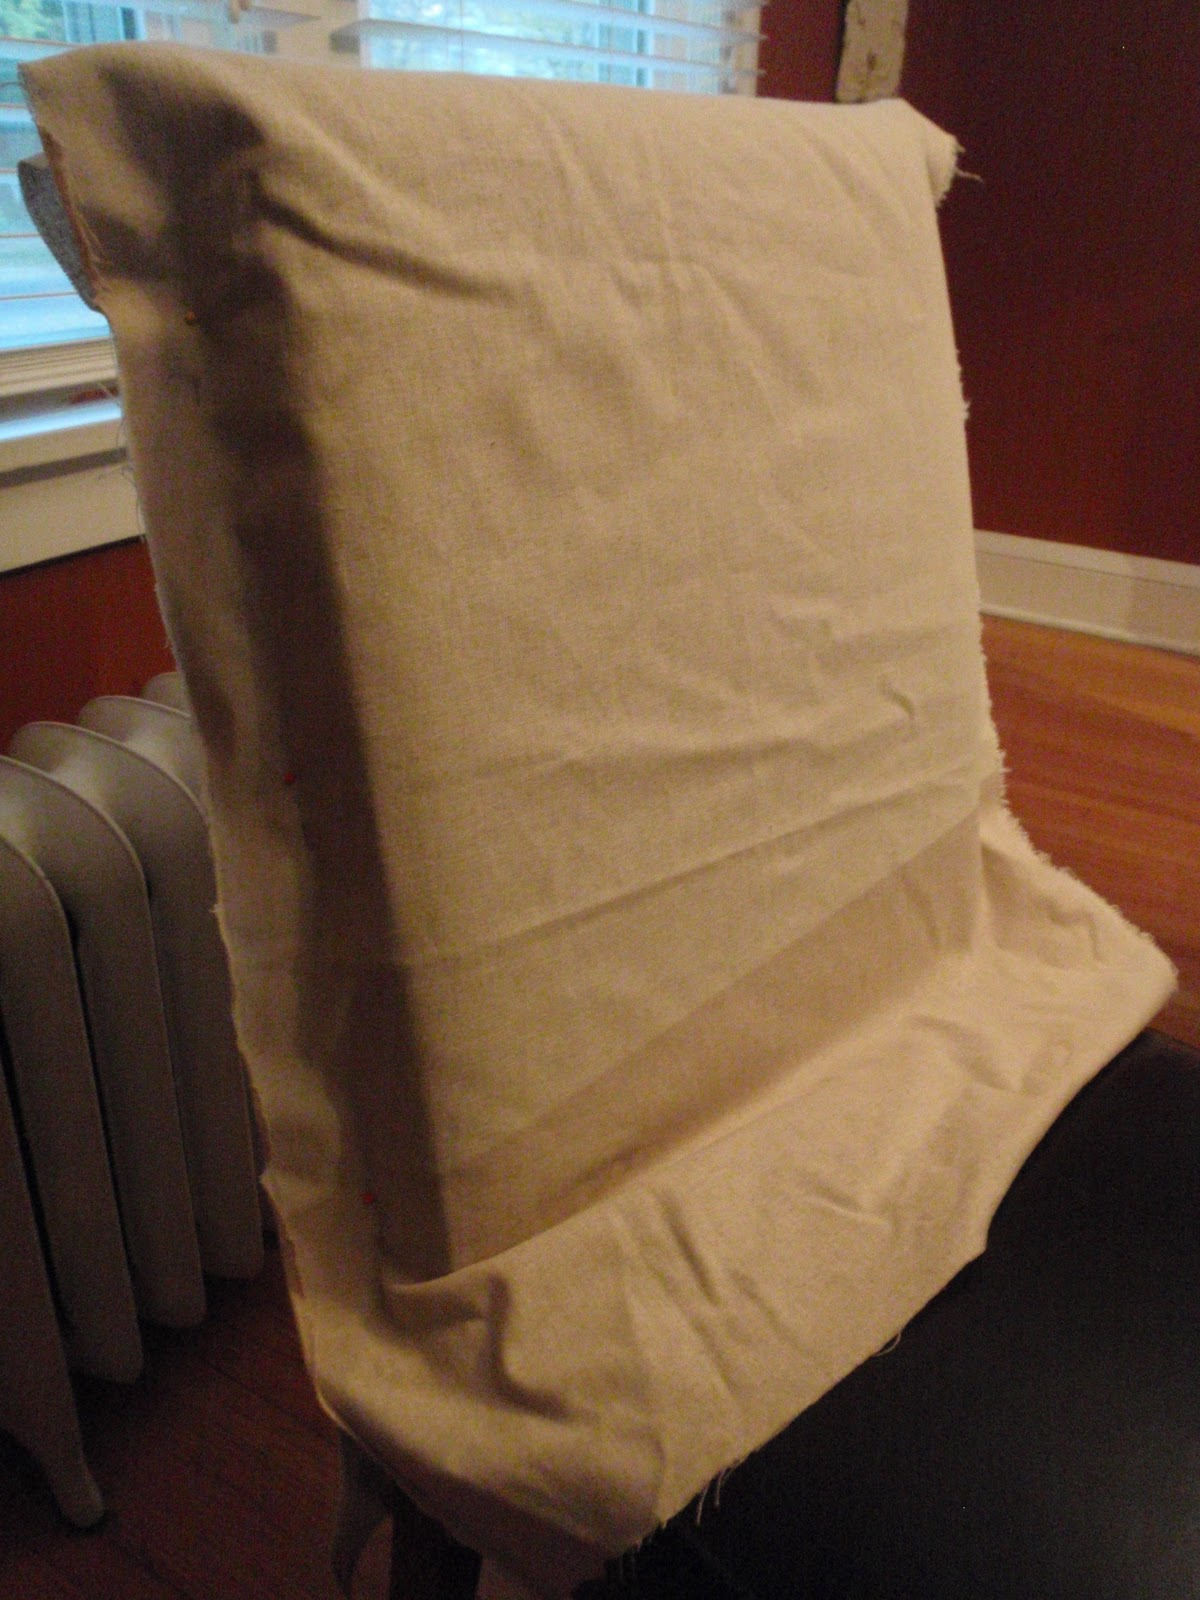 Northman's Party Vamps: DIY Grave Chair Covers